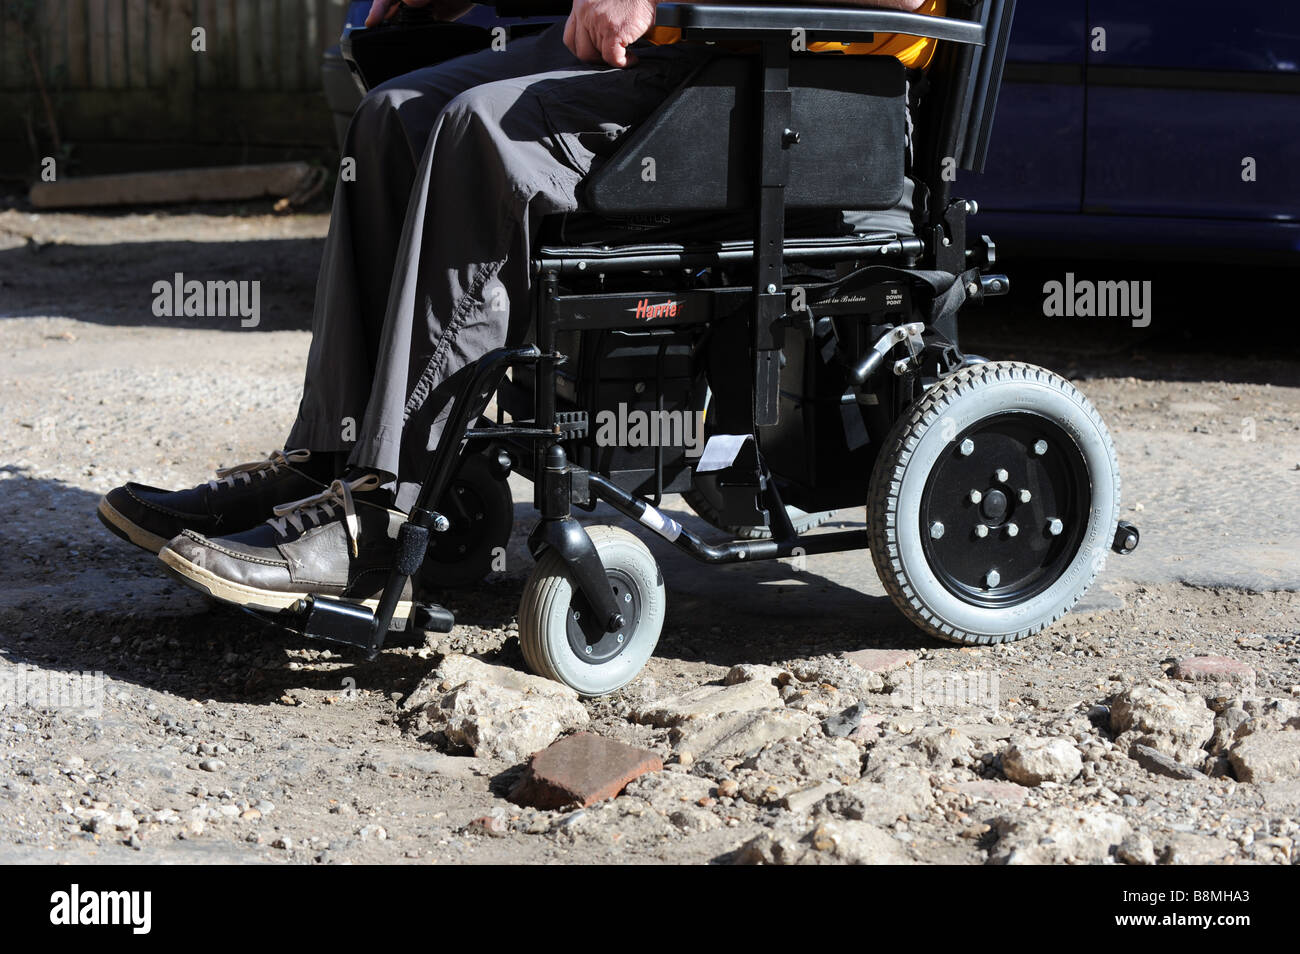 A disabled man in a motorised wheelchair gets stuck on some uneven ground - Stock Image